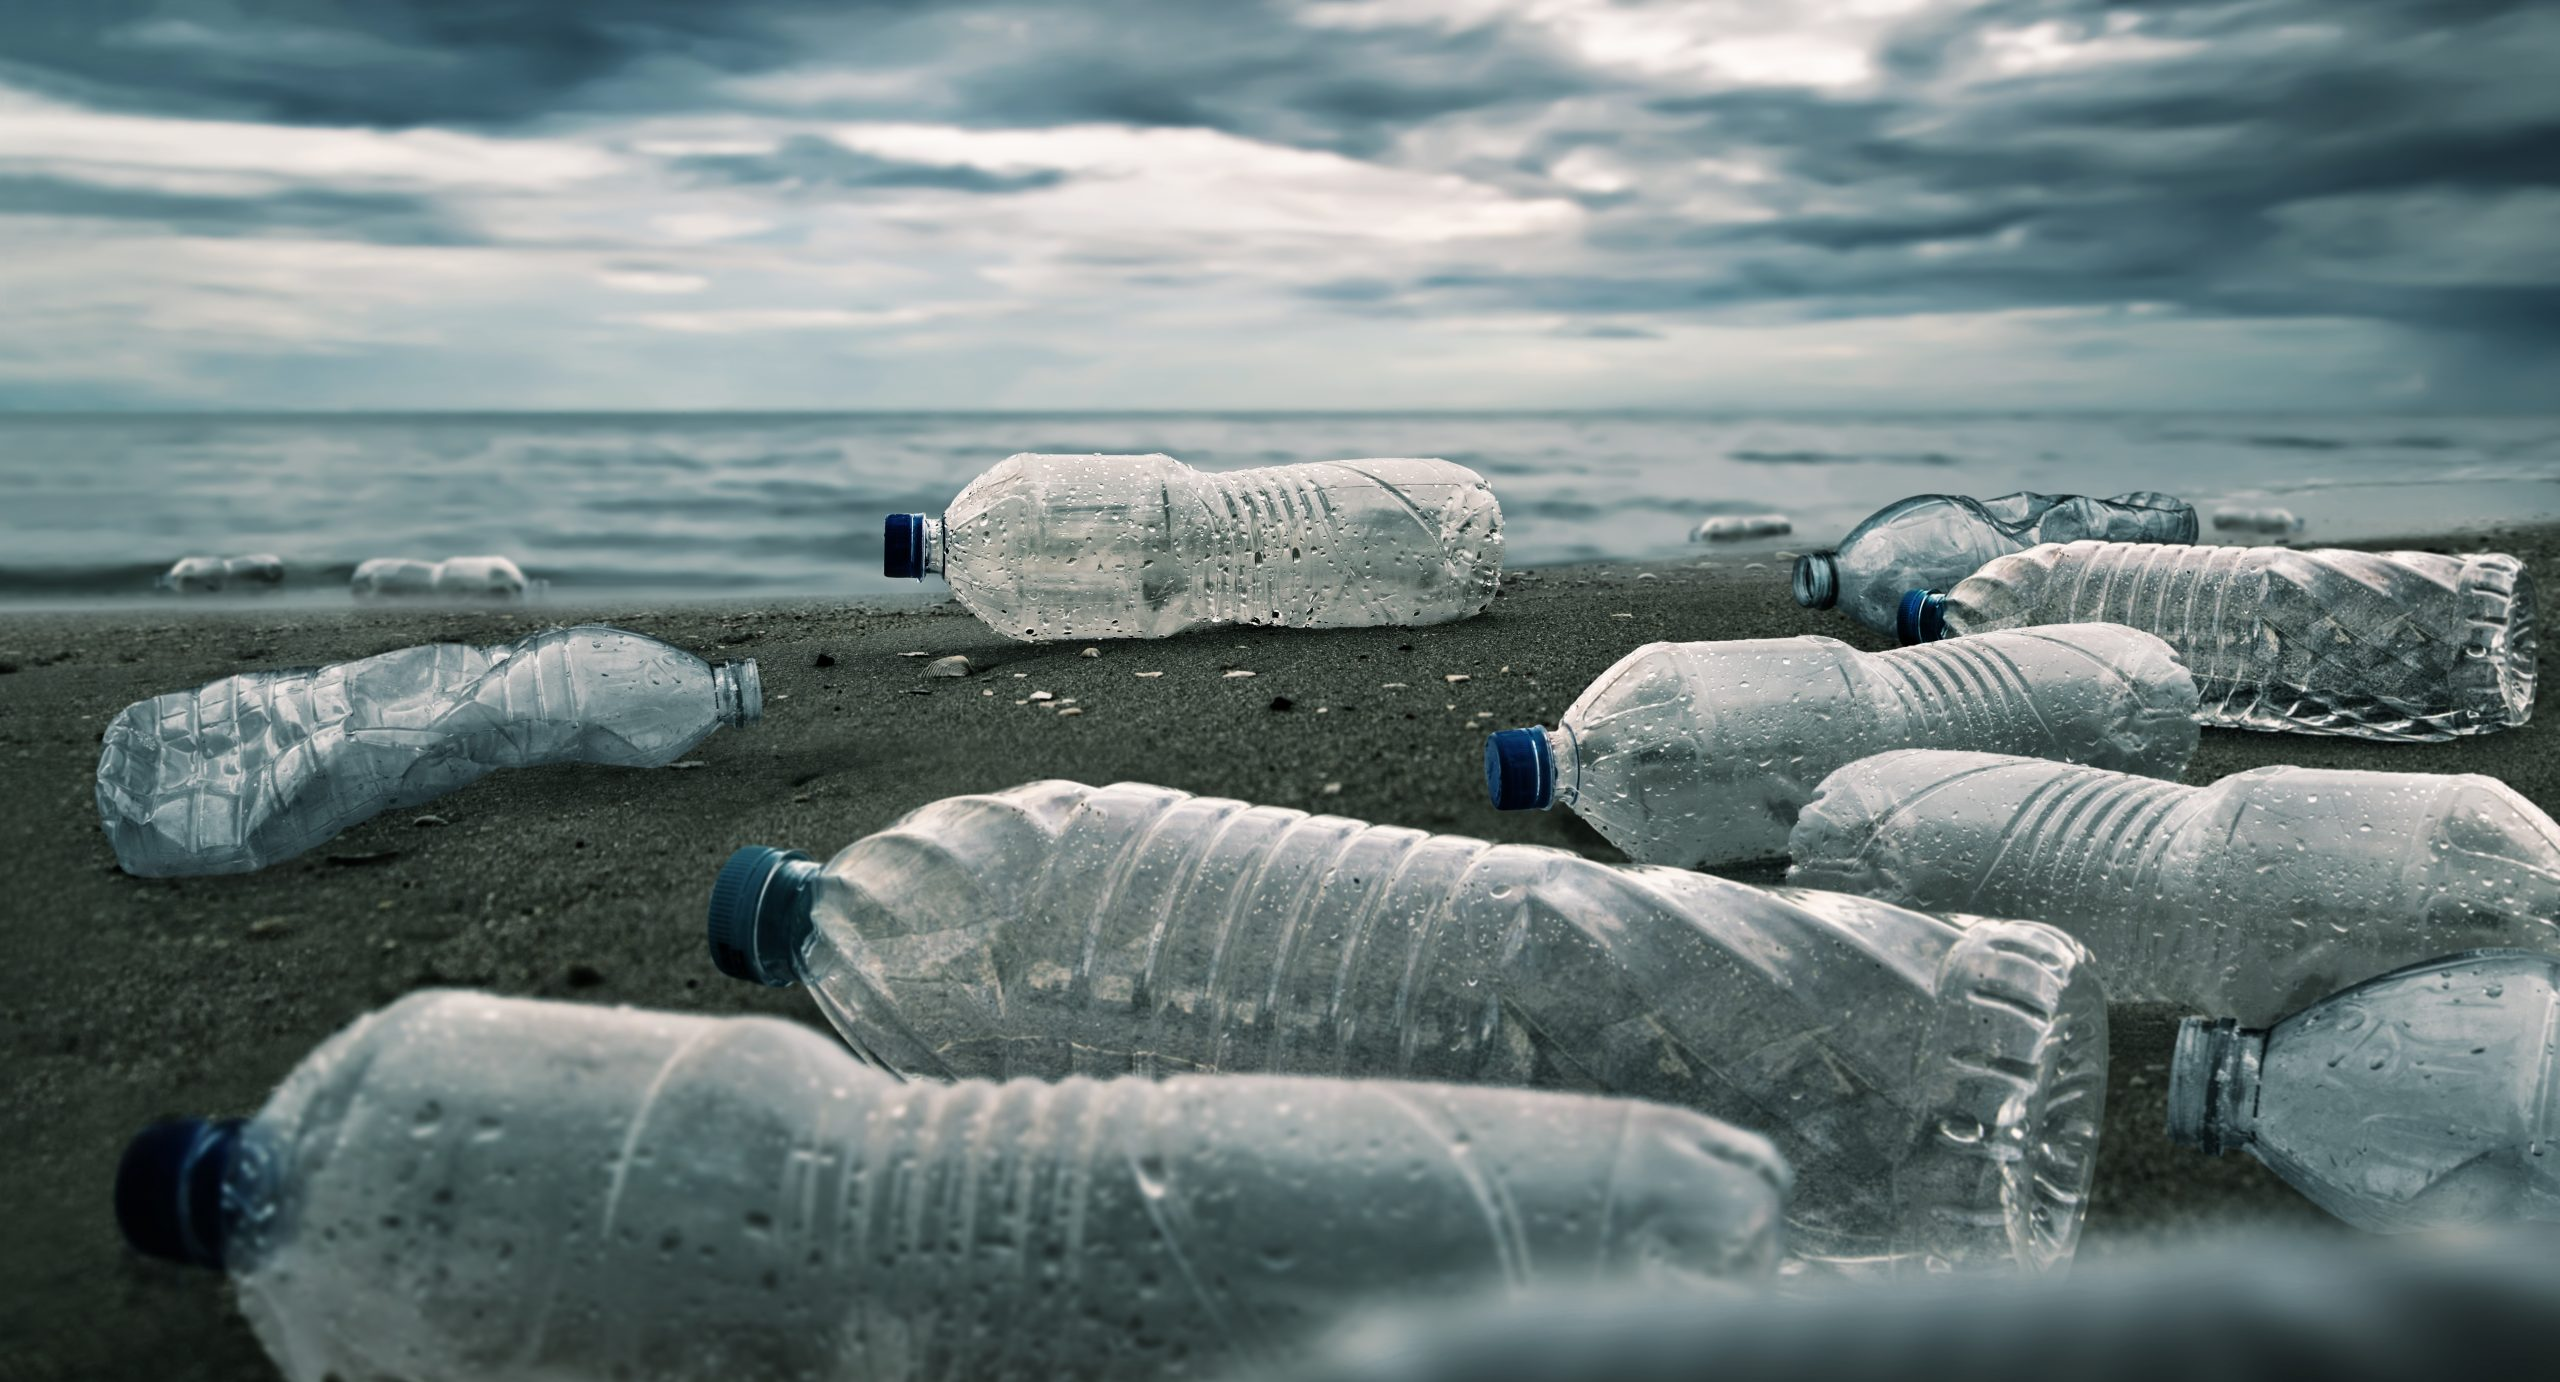 NGOs demand enabling lasting solutions to the plastic crisis for a more resilient economy